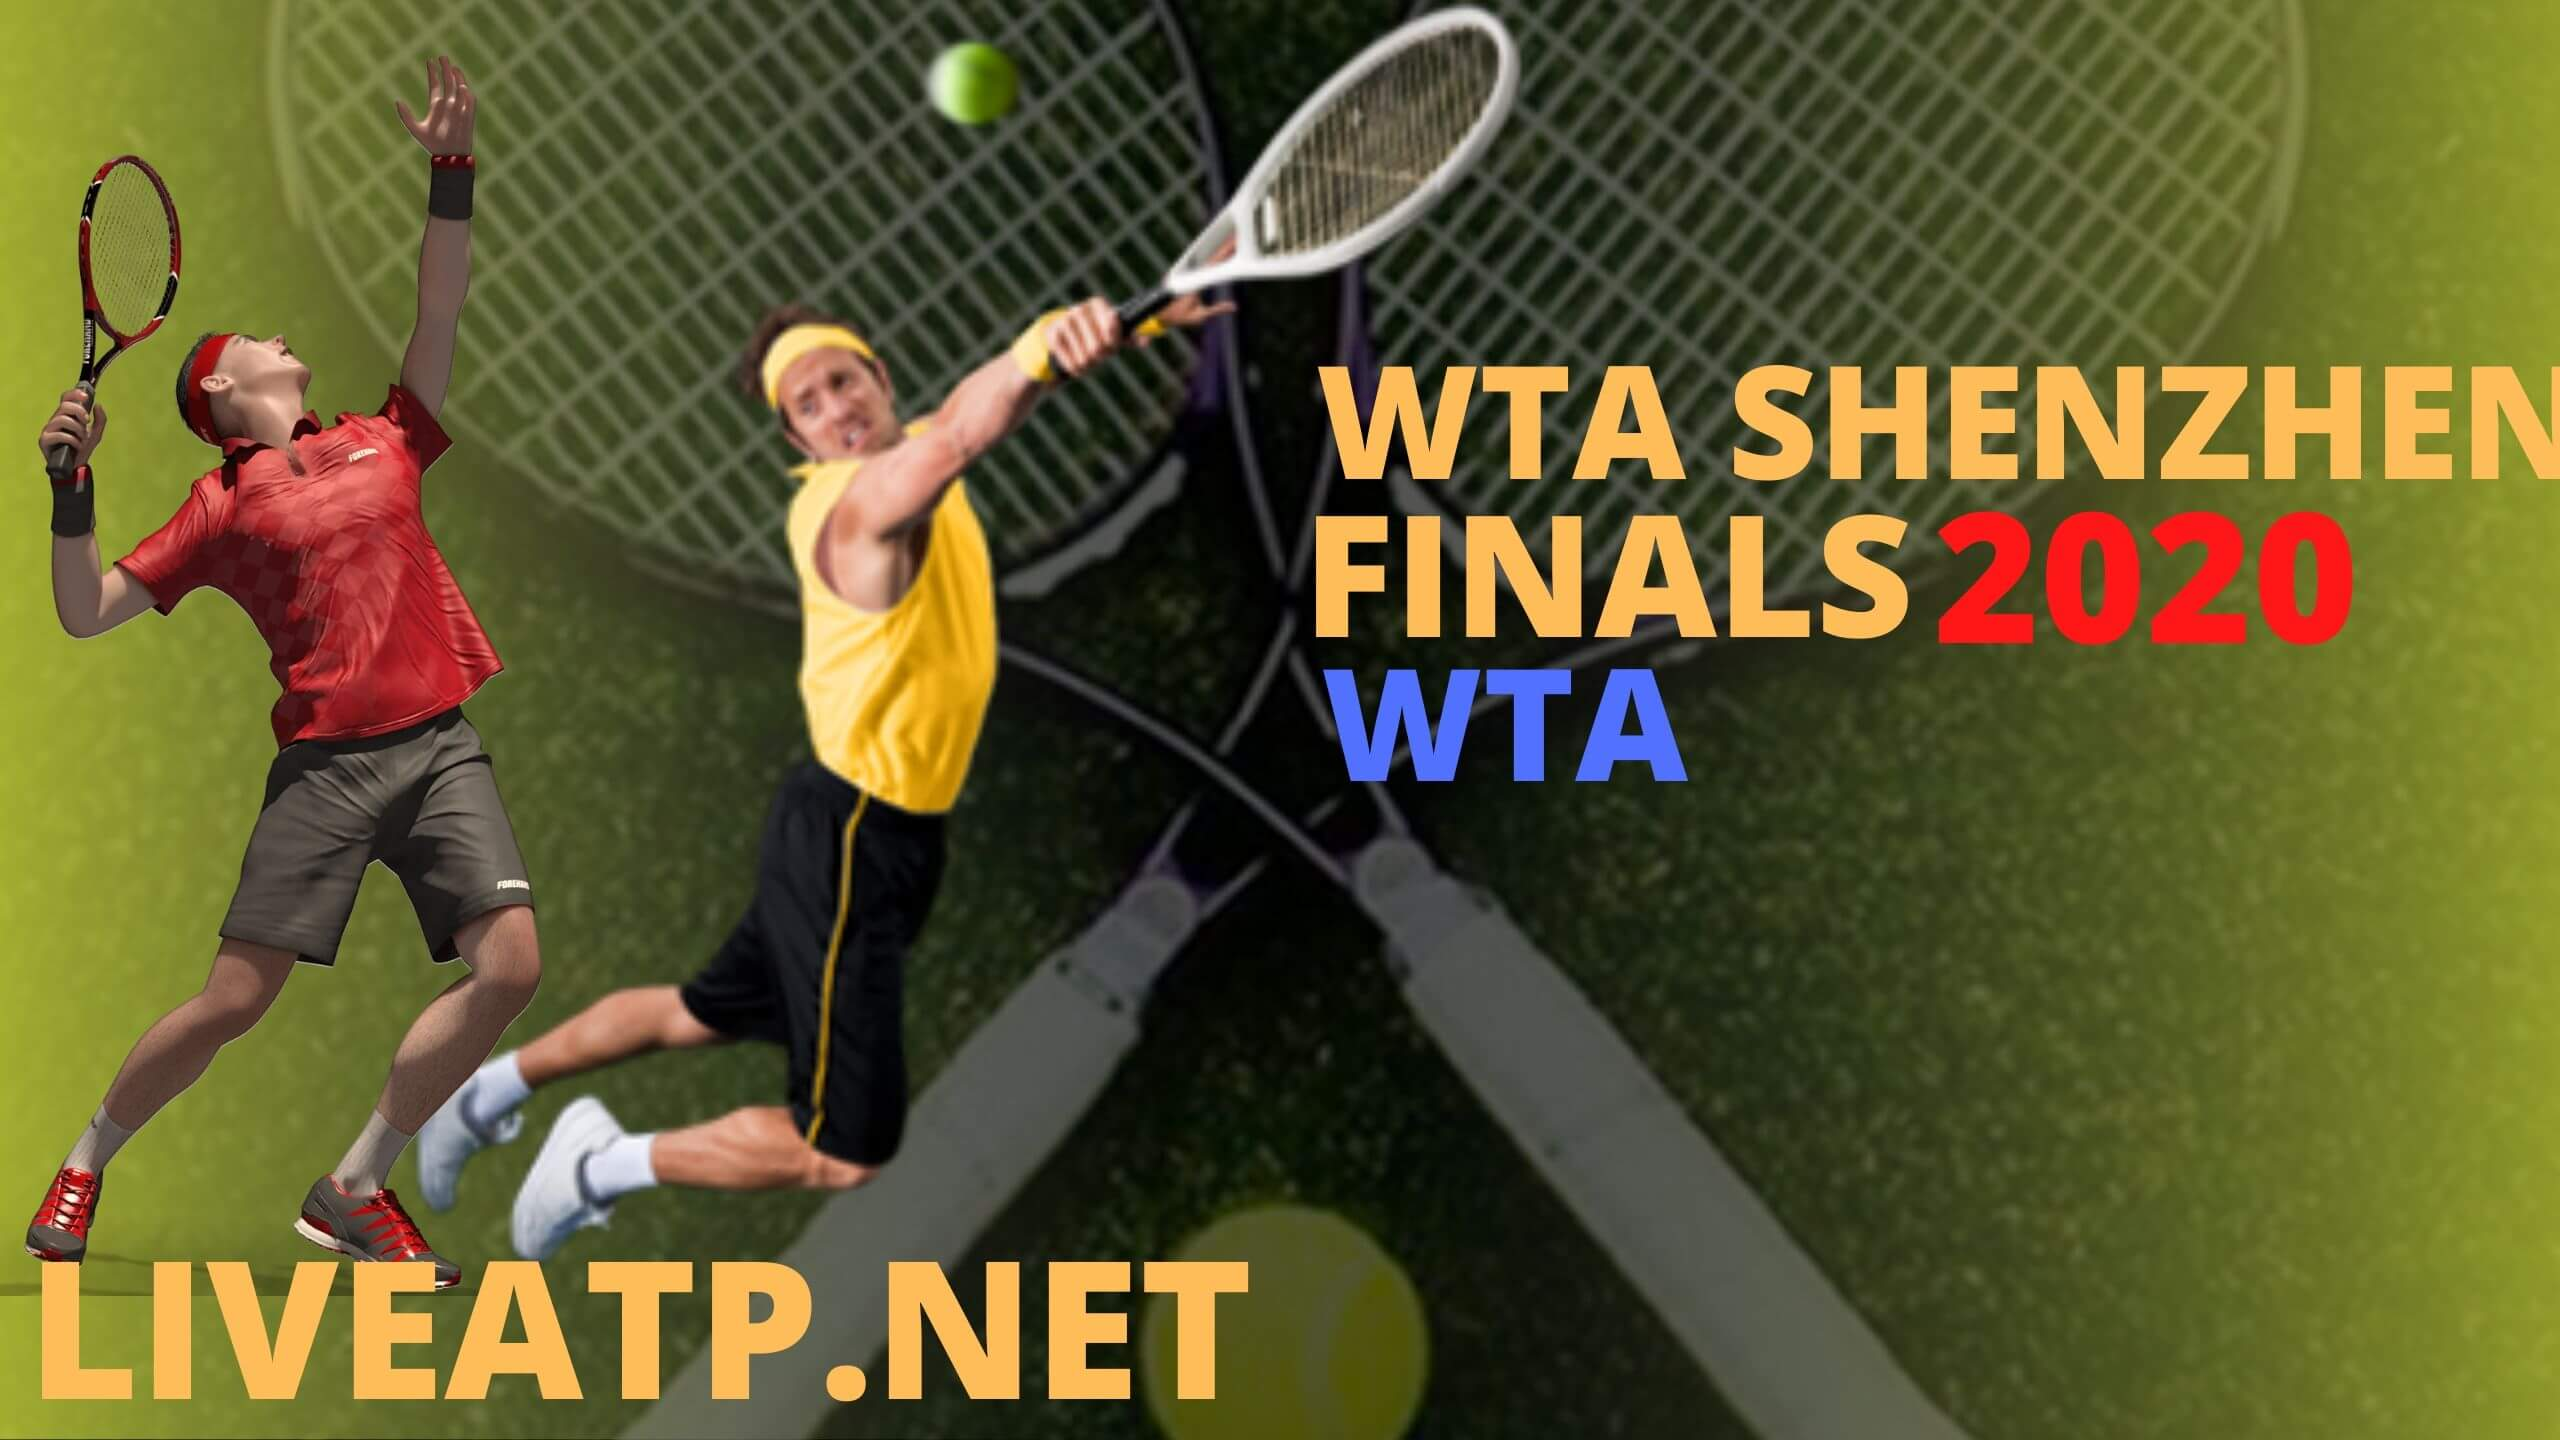 WTA Shenzhen FINALS Live Stream 2020 | Semi Final